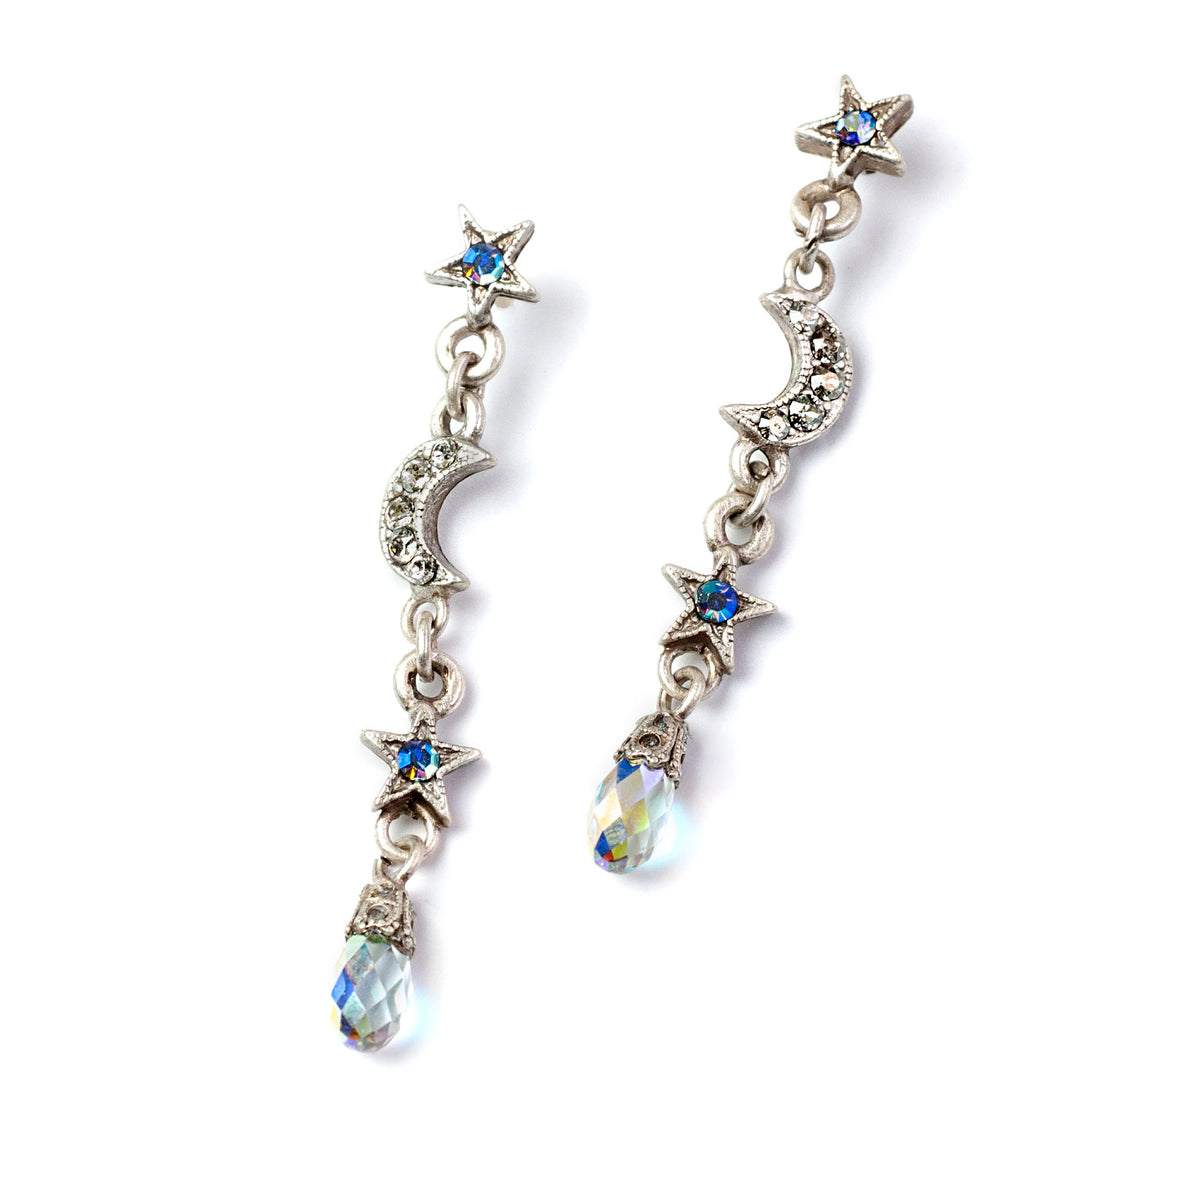 Dangling Moon & Star Earrings E1494 - sweetromanceonlinejewelry